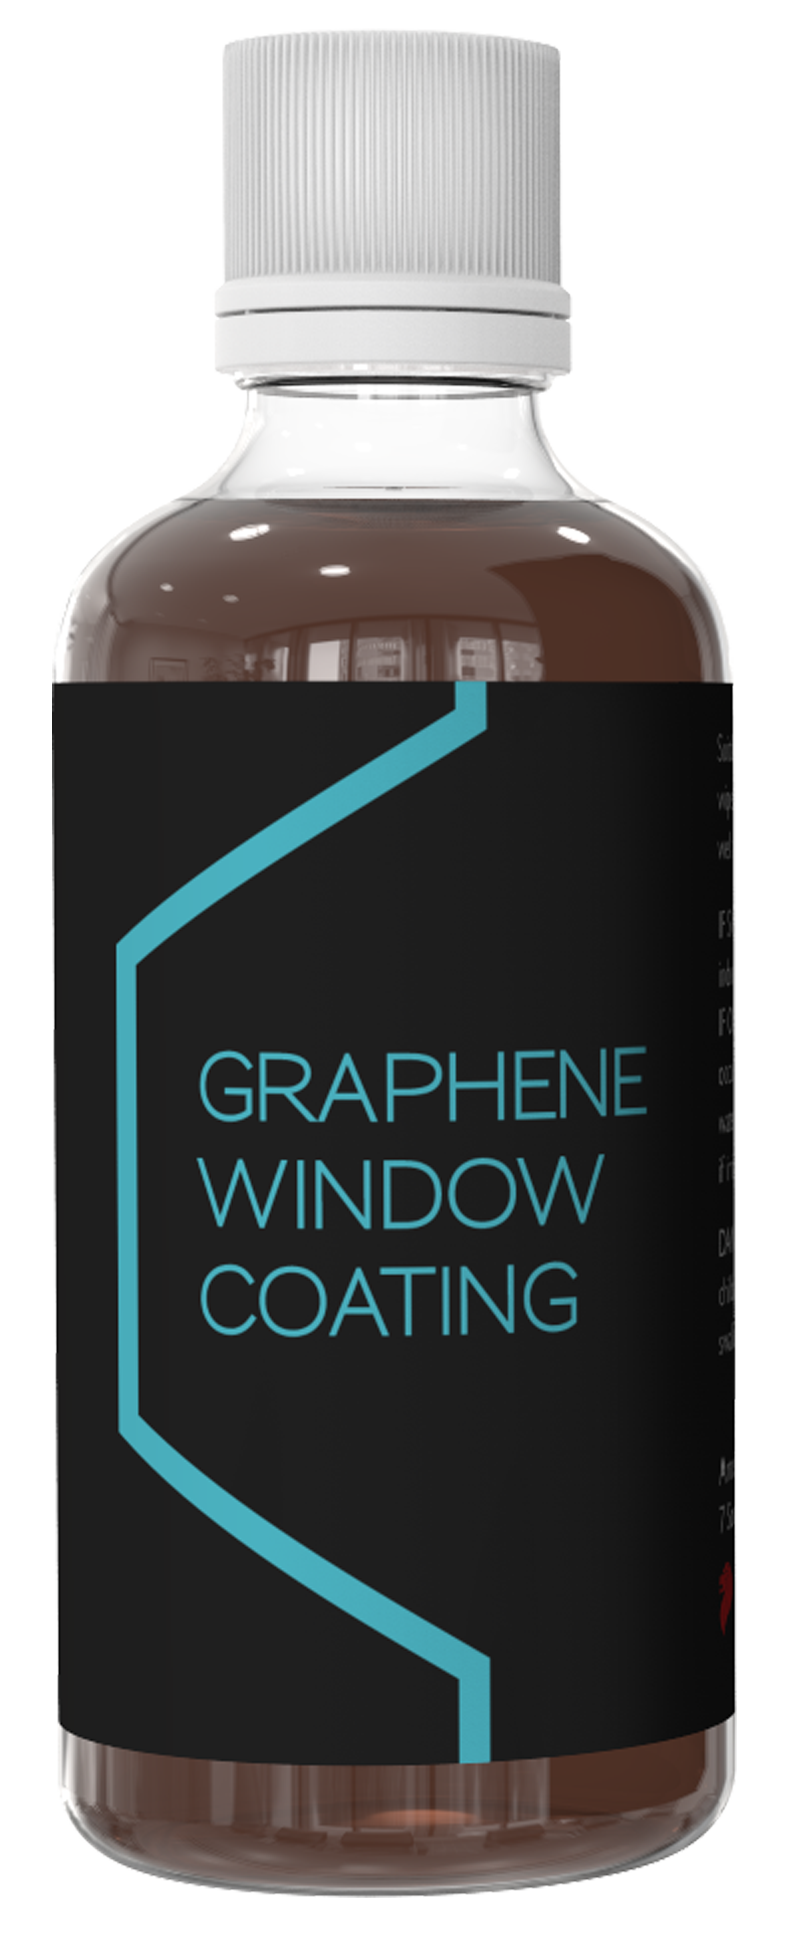 Graphene Window Coating